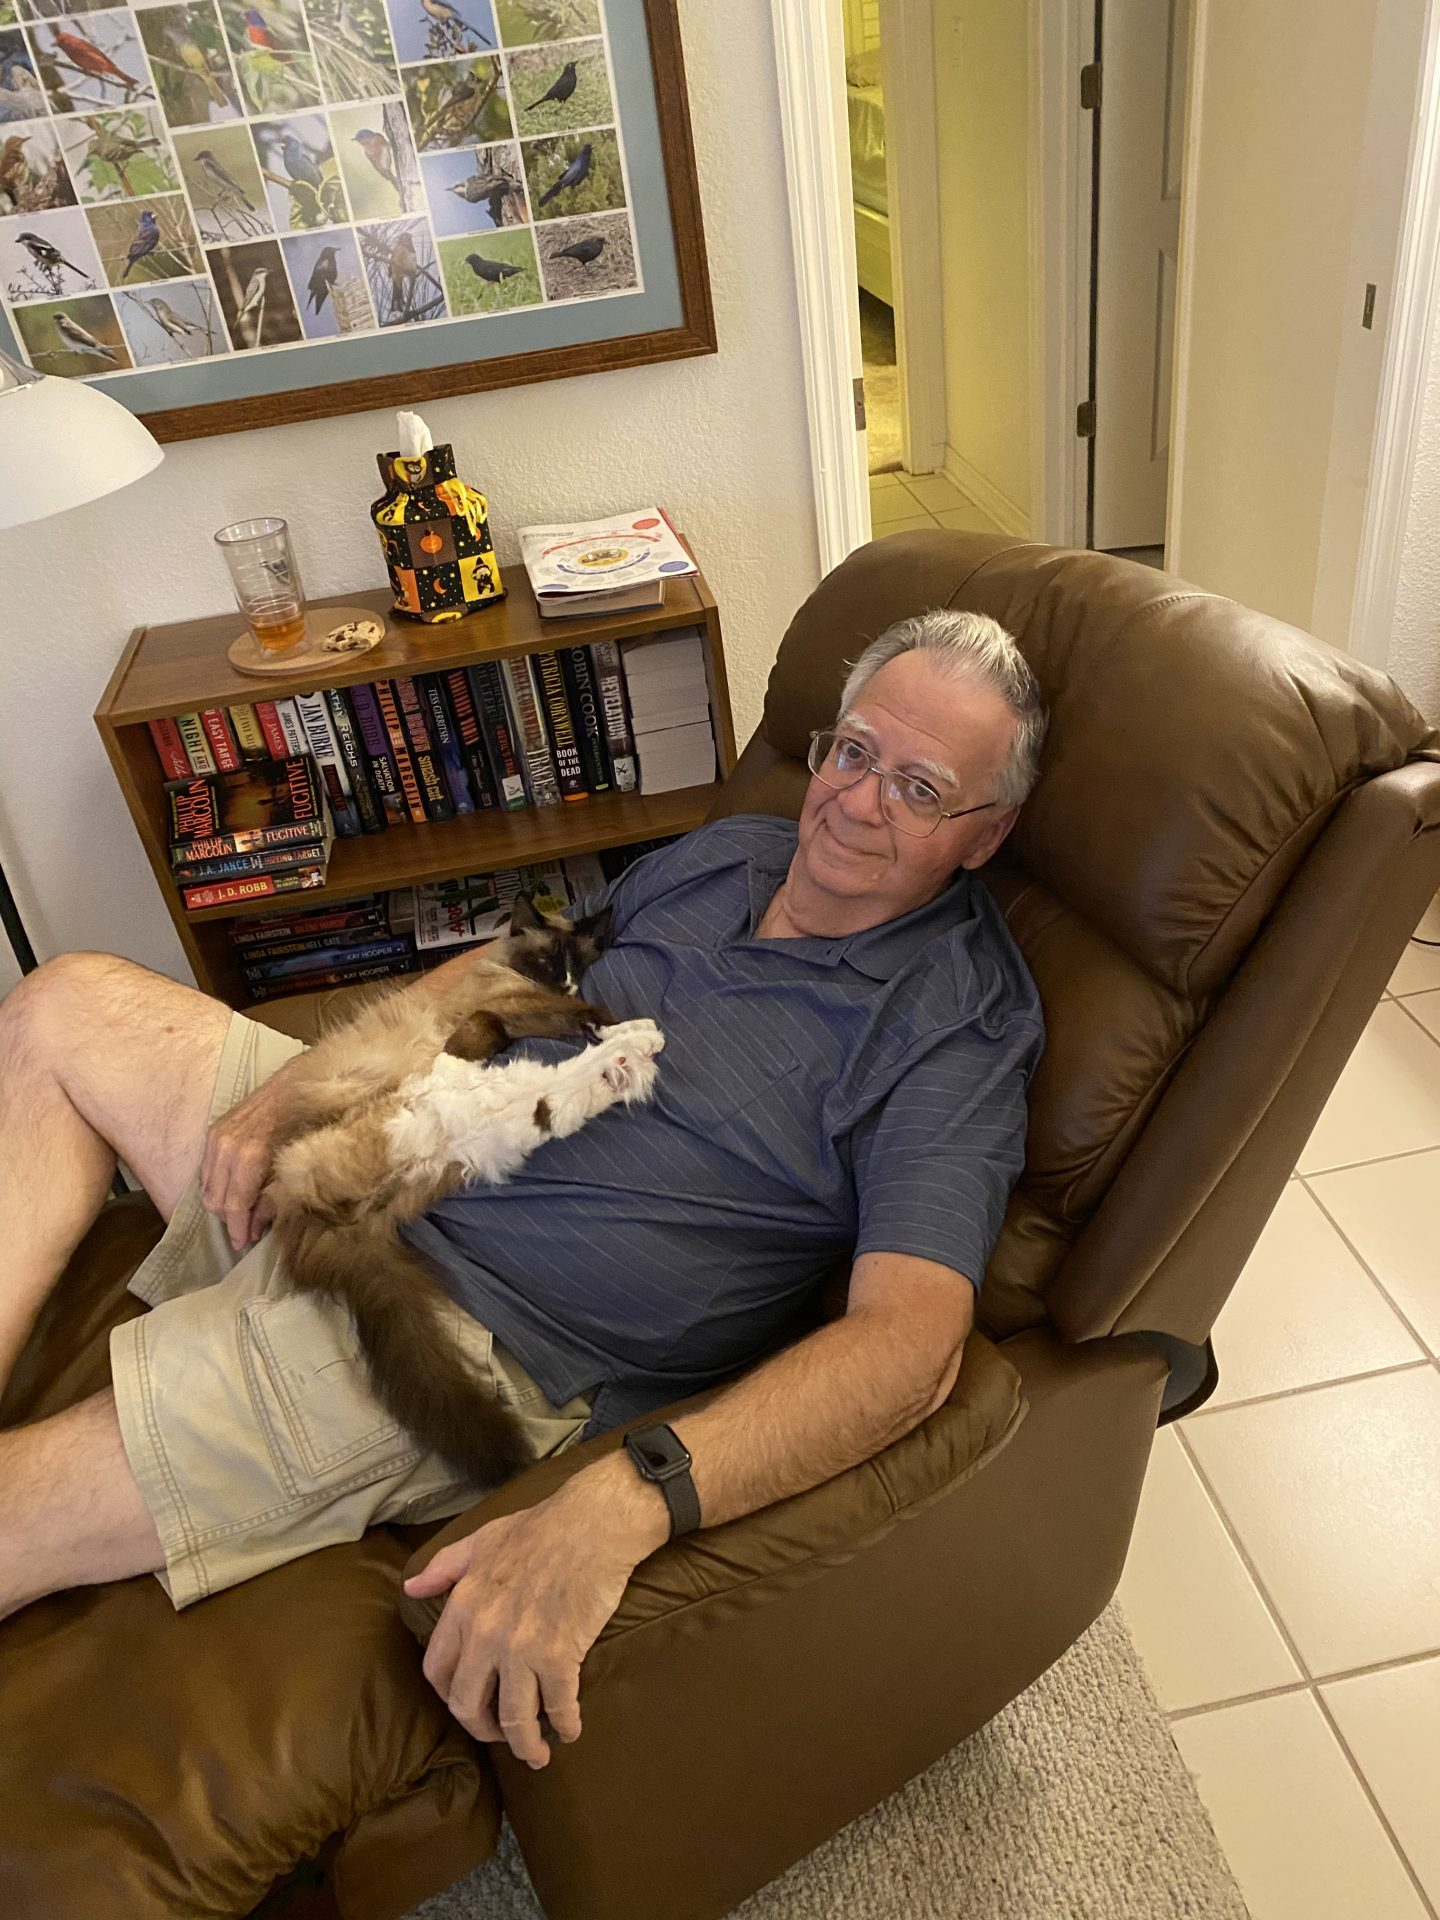 Dad with his cat Cocoa.